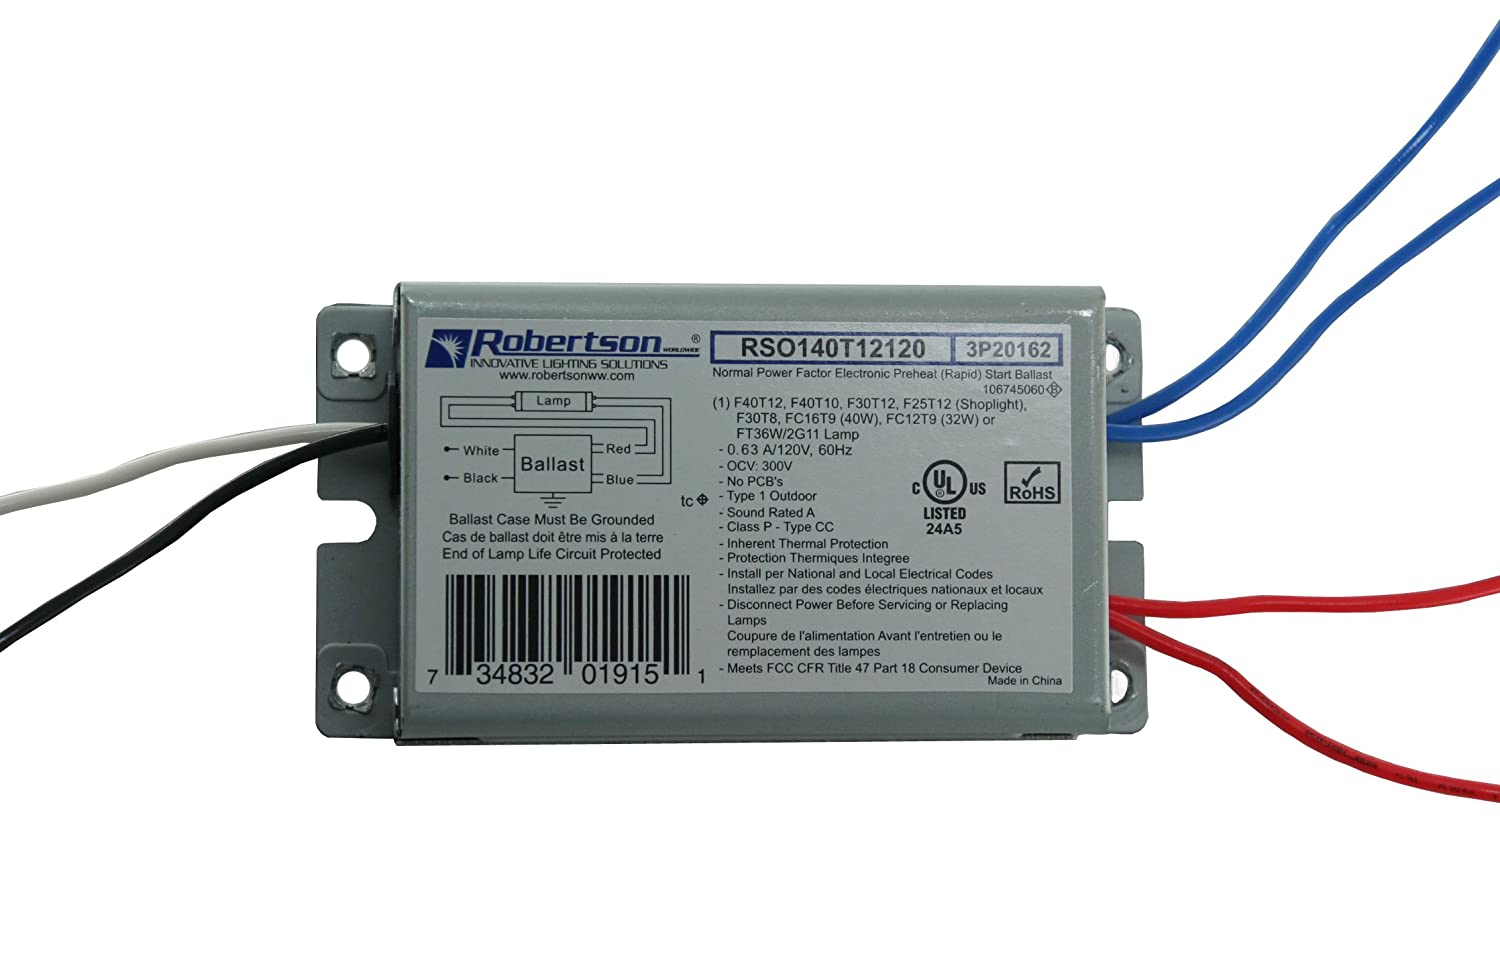 Robertson 3p20162 Fluorescent Eballast For 1 F40t12 Linear Lamp Ballast Wiring Diagram Preheat Rapidstart 120vac 50 60hz Normal Factor Npf Model Rso140t12120